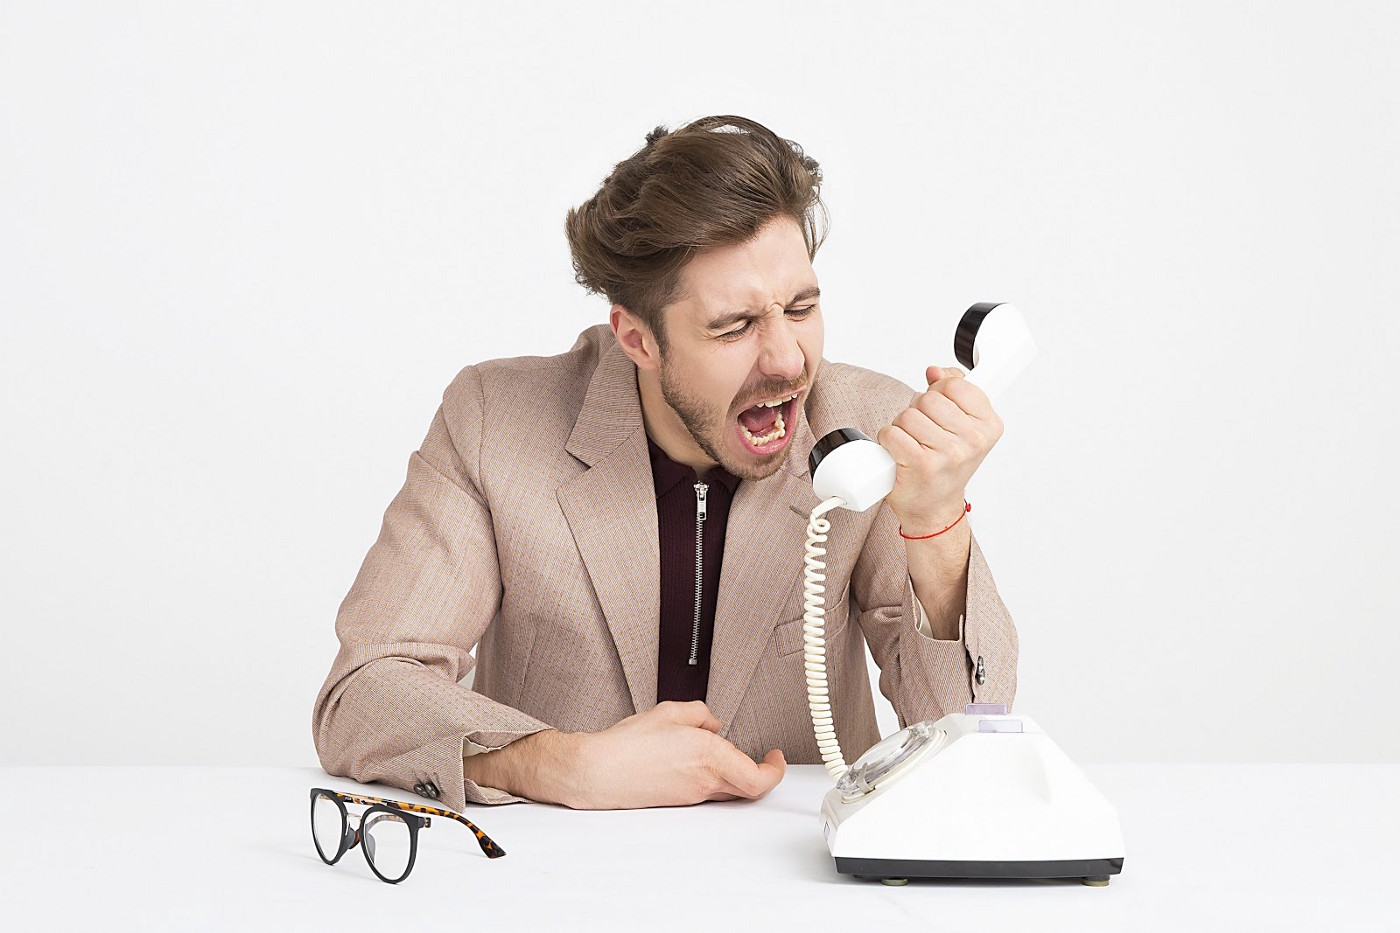 Person yelling into phone